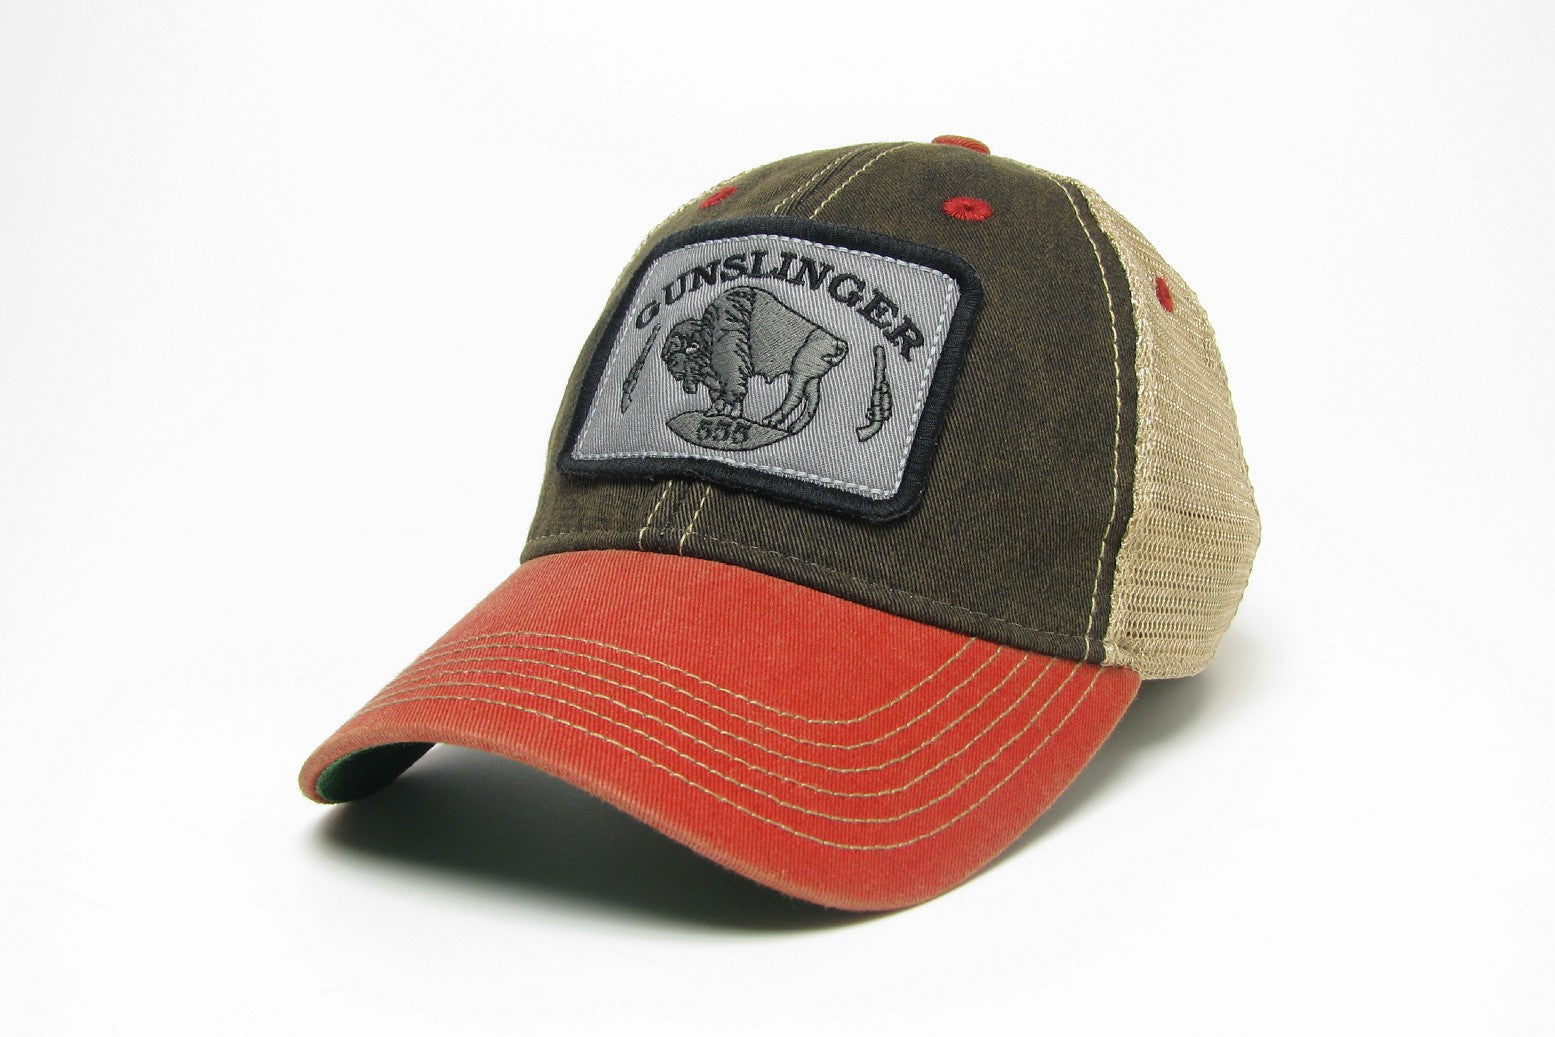 Triple Nickel Legacy Cap